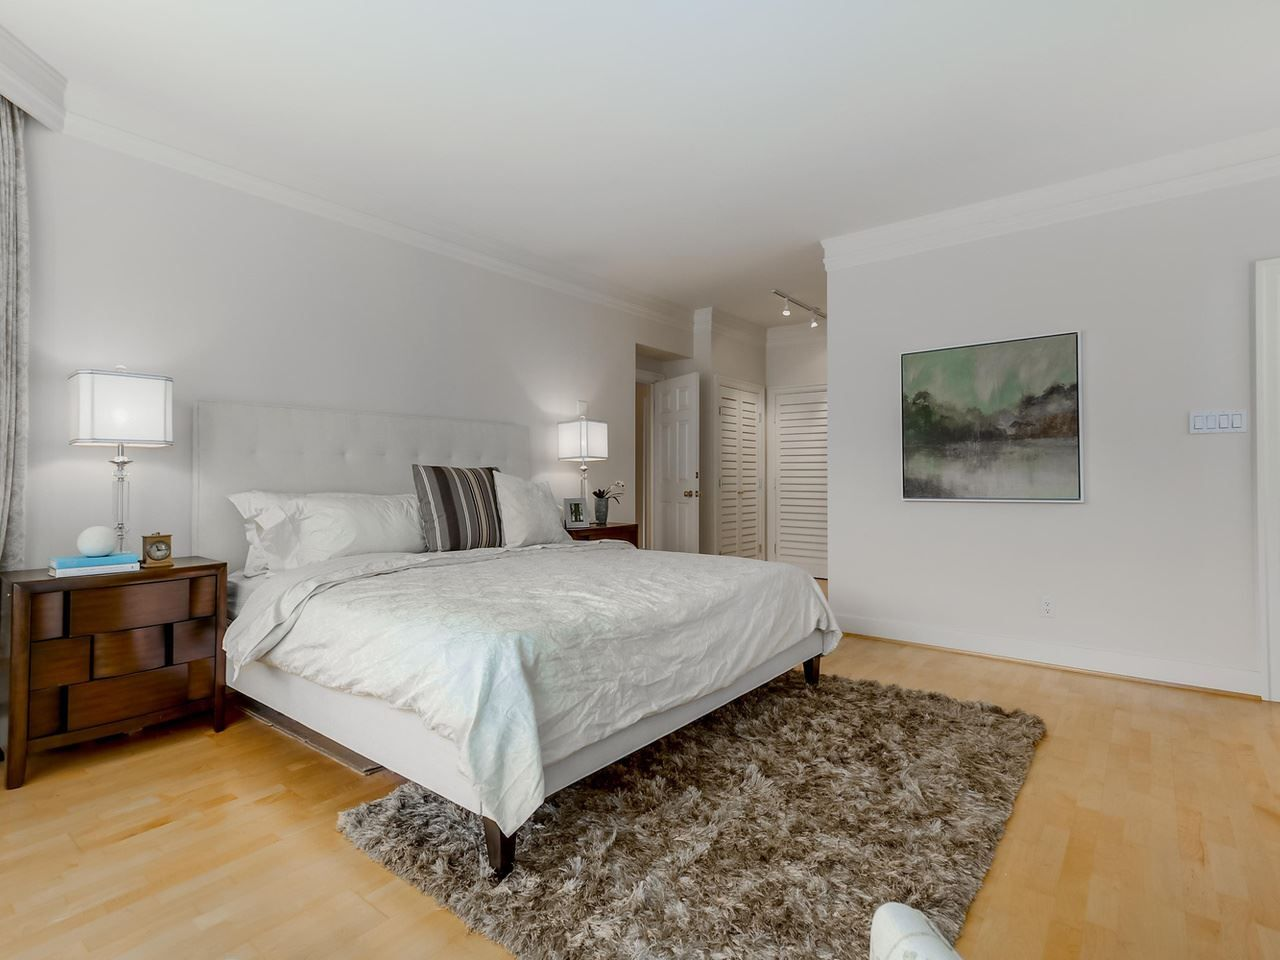 """Photo 18: Photos: 800 1675 HORNBY Street in Vancouver: Yaletown Condo for sale in """"SEAWALK SOUTH"""" (Vancouver West)  : MLS®# R2083569"""